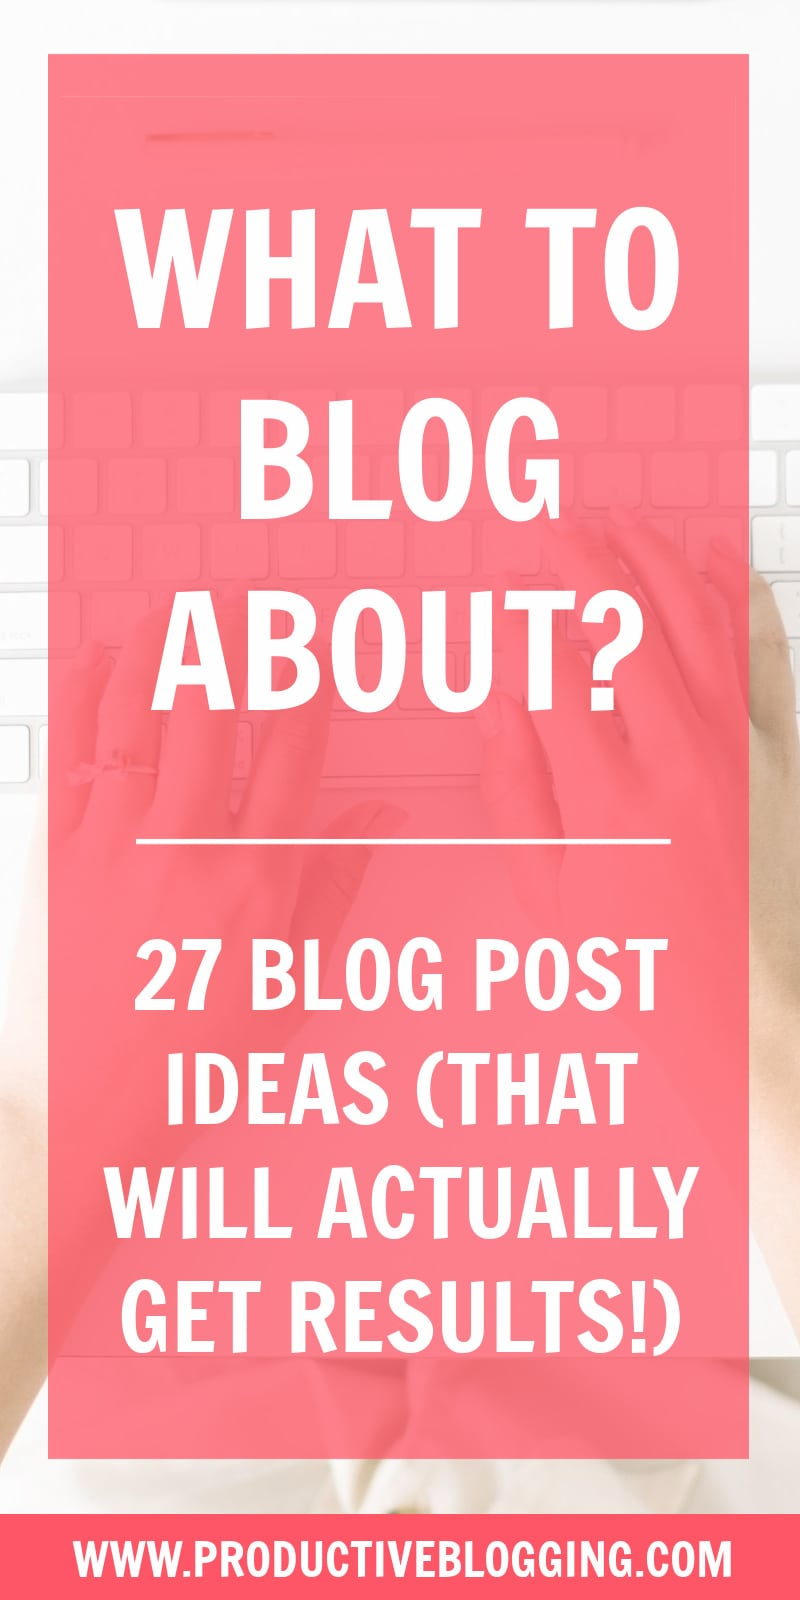 Staring at a blinking cursor? Stuck on what to write about? Here are 27 blog post ideas to inspire you (and which will actually get you results!) #blogpostideas #whattoblogabout #bloggersblock #writersblock #resultsdrivenblogging #blogideas #postideas #blogginglife #bloglife #contentmarketing #blogging #blogger #professionalblogger #bloggingismyjob #solopreneur #mompreneur #fempreneur #makemoneyblogging #bloggingbiz #bloggingtips #blogsmarternotharder #productiveblogging